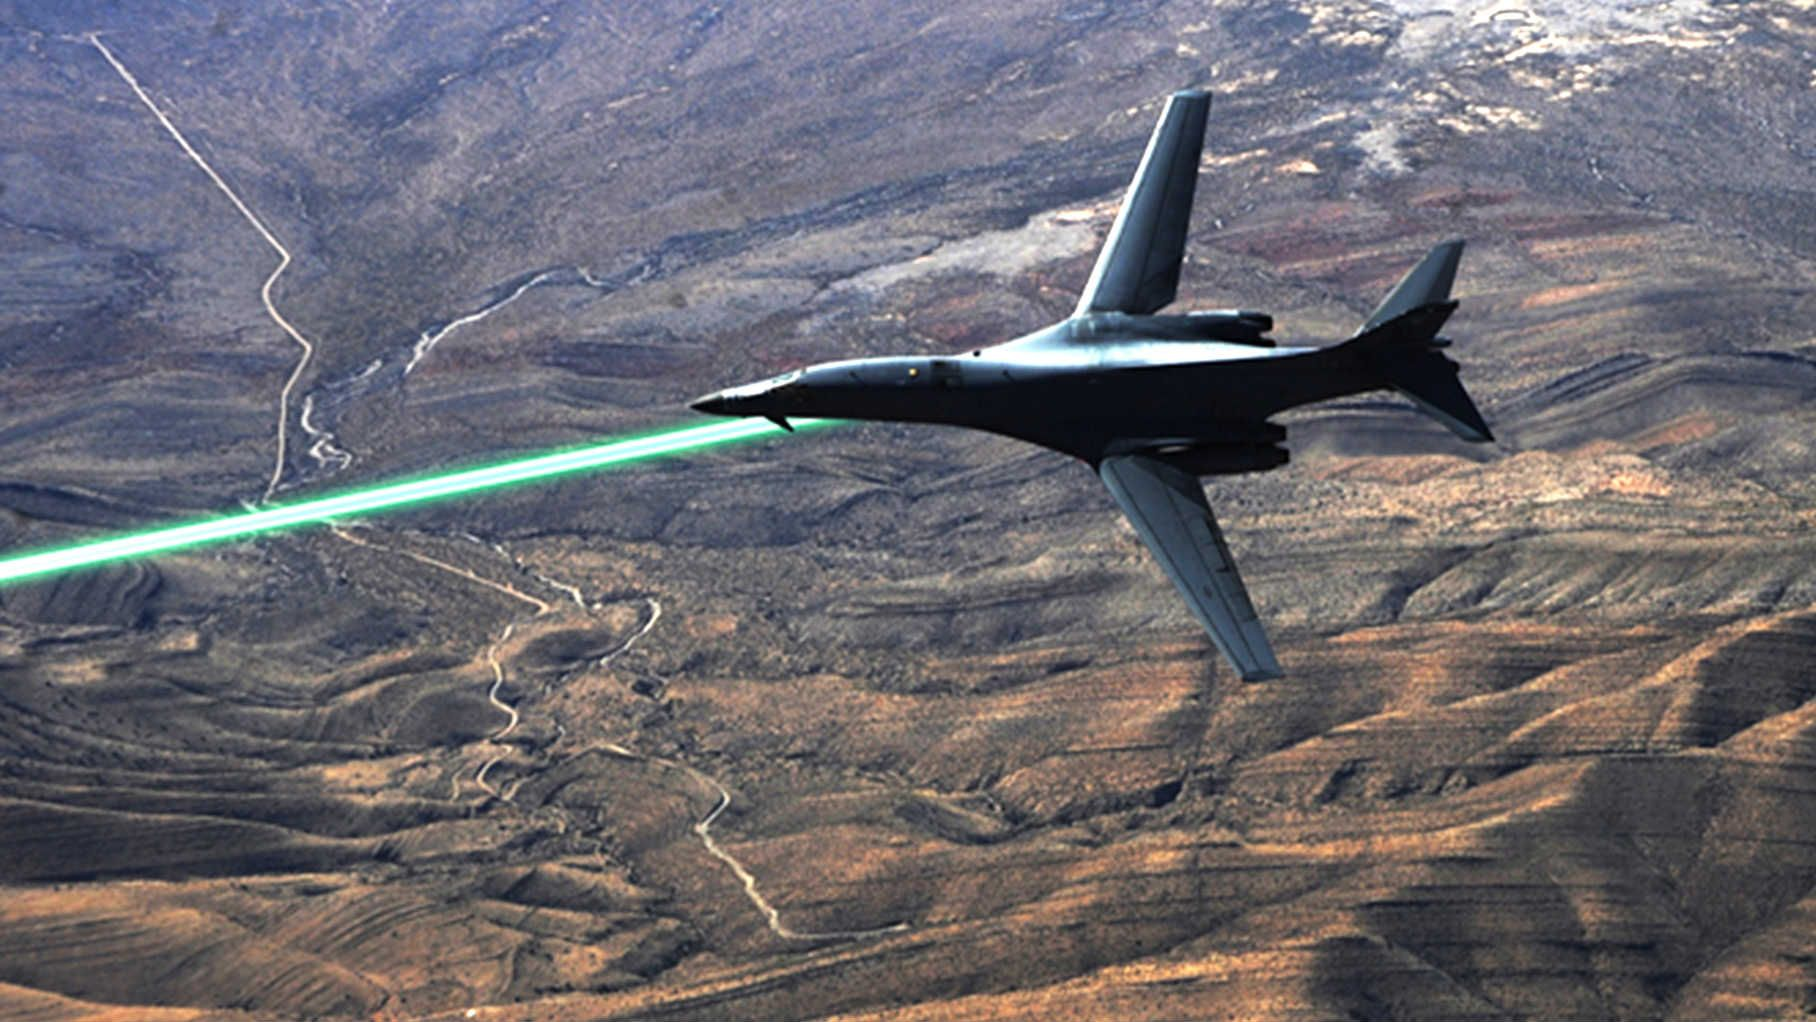 Air Force to Have Lasers on Its Fighters by 2020